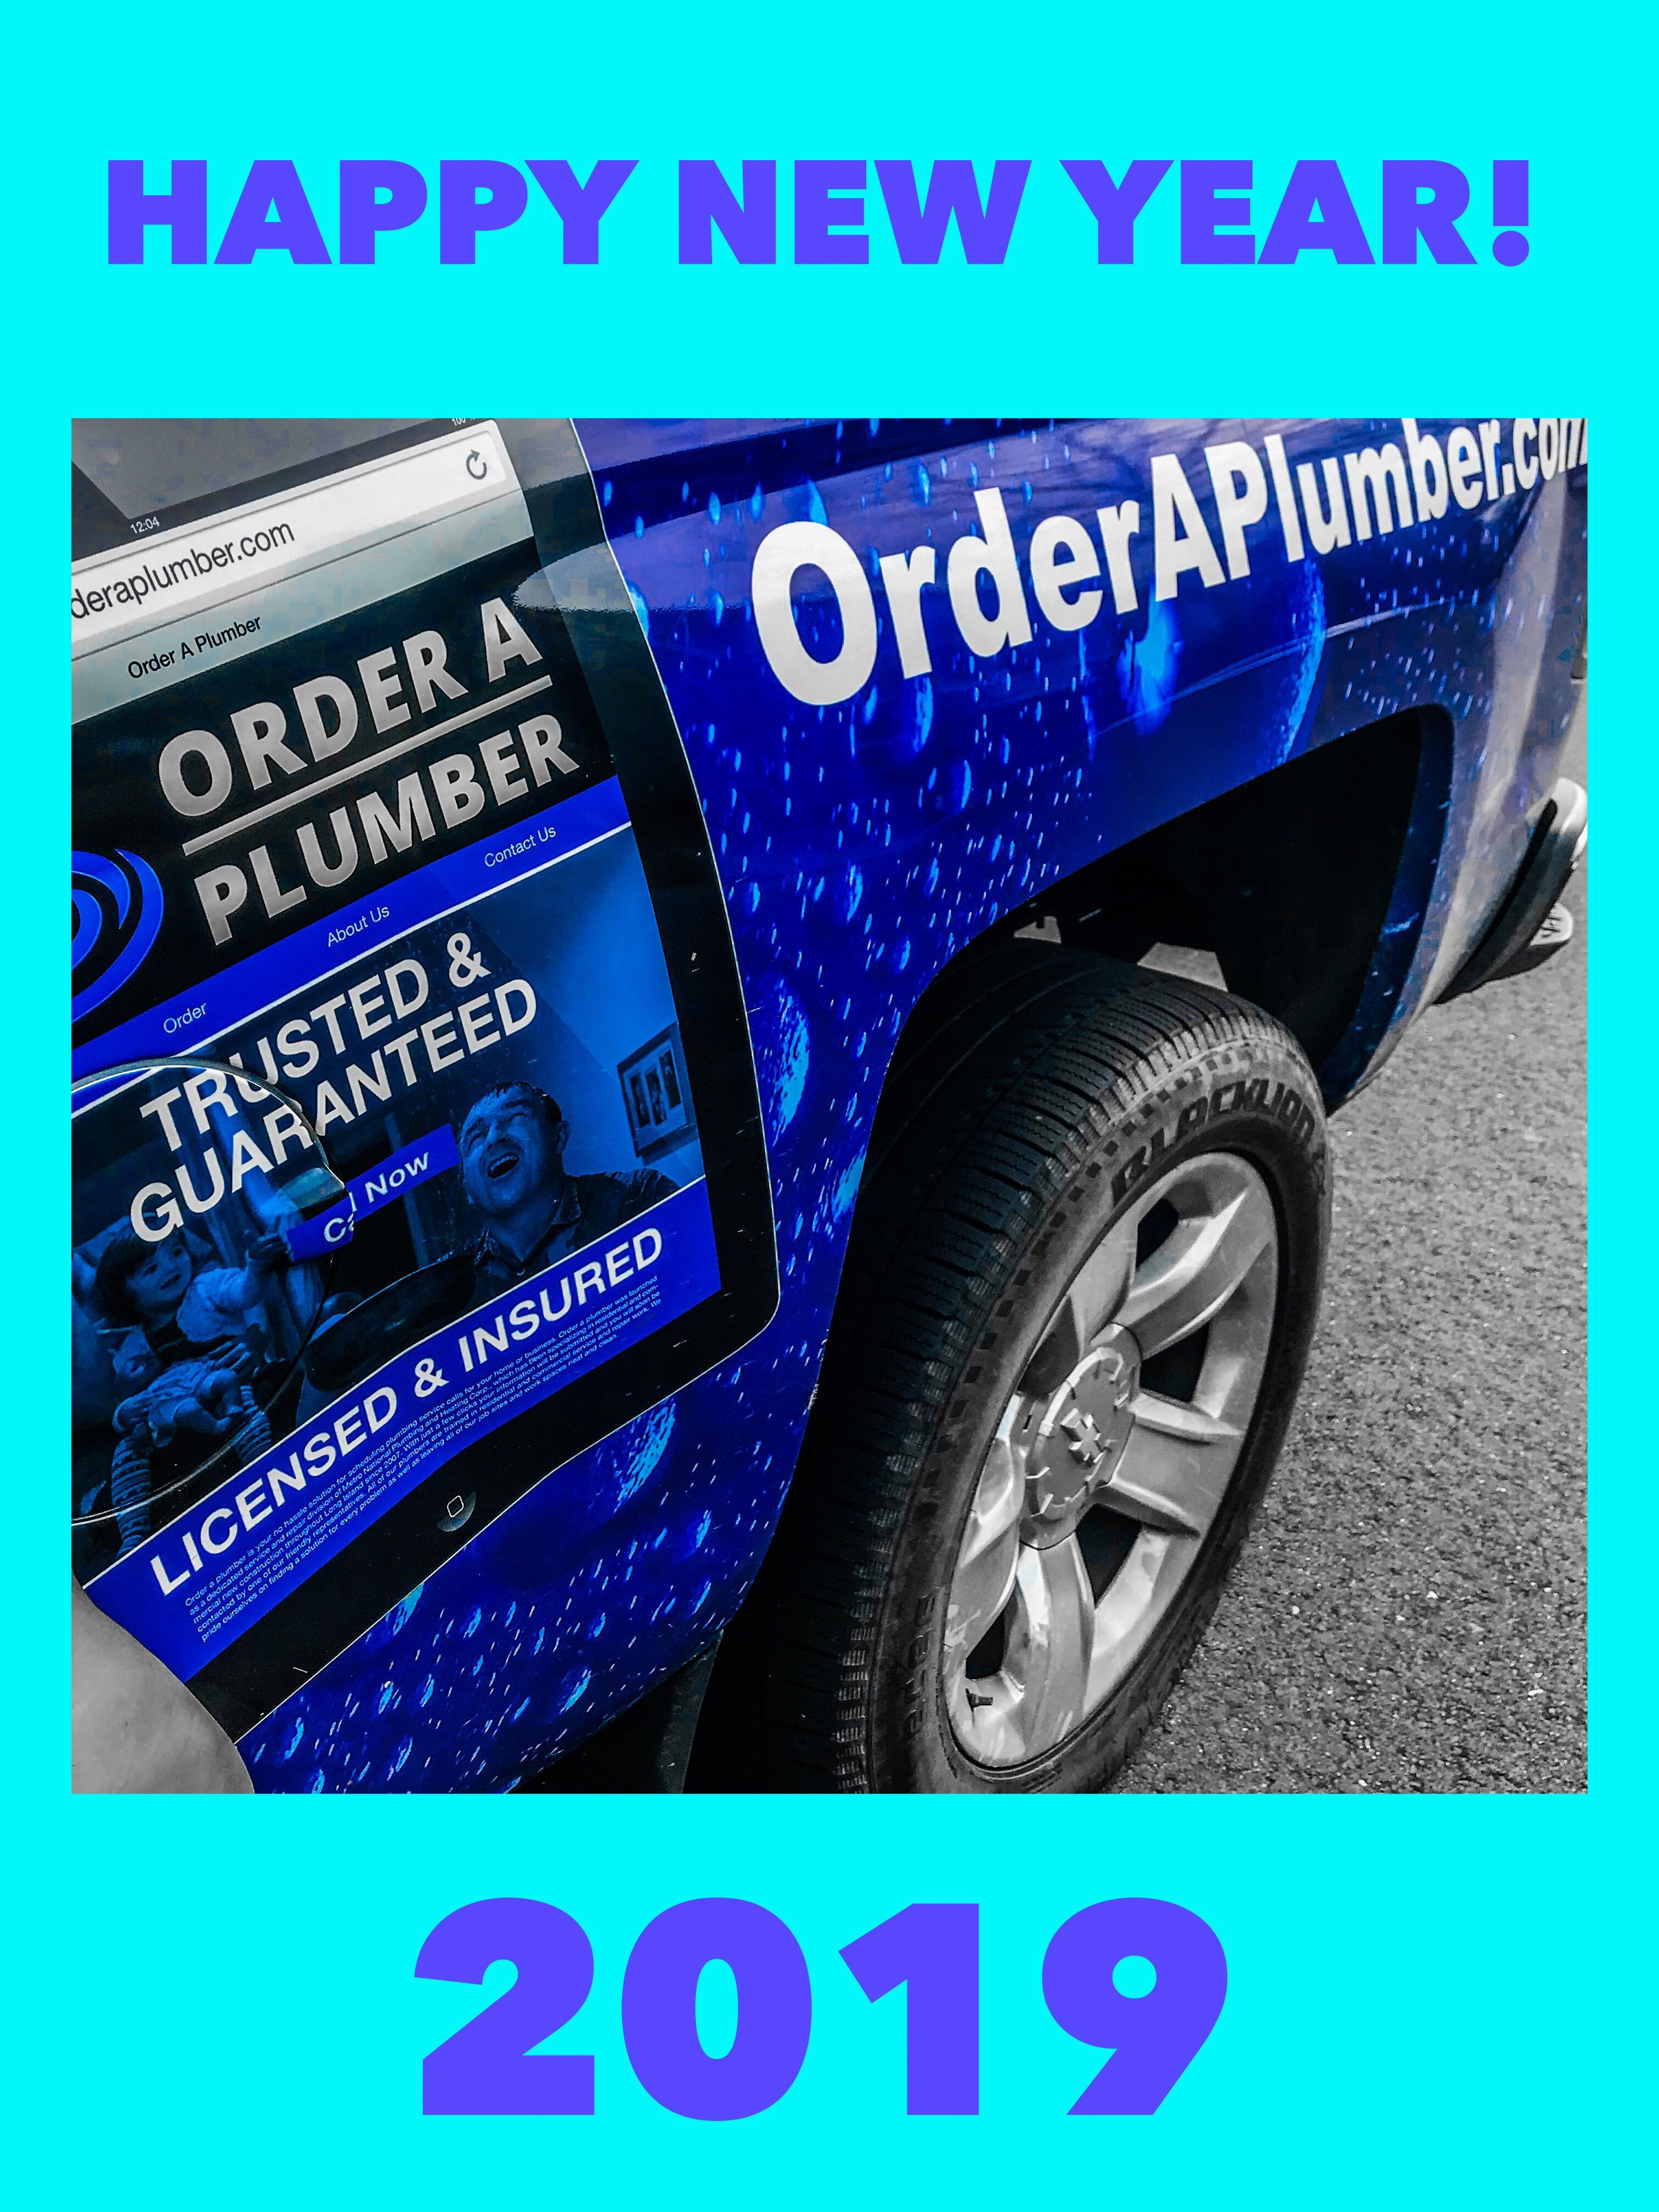 Orderaplumber Com Would Like To Wish Everyone A Happy New Year Orderaplumber Happynewyear 2019 Plumbe With Images Diy Bathroom Diy Clothes For School Bathroom Toilets